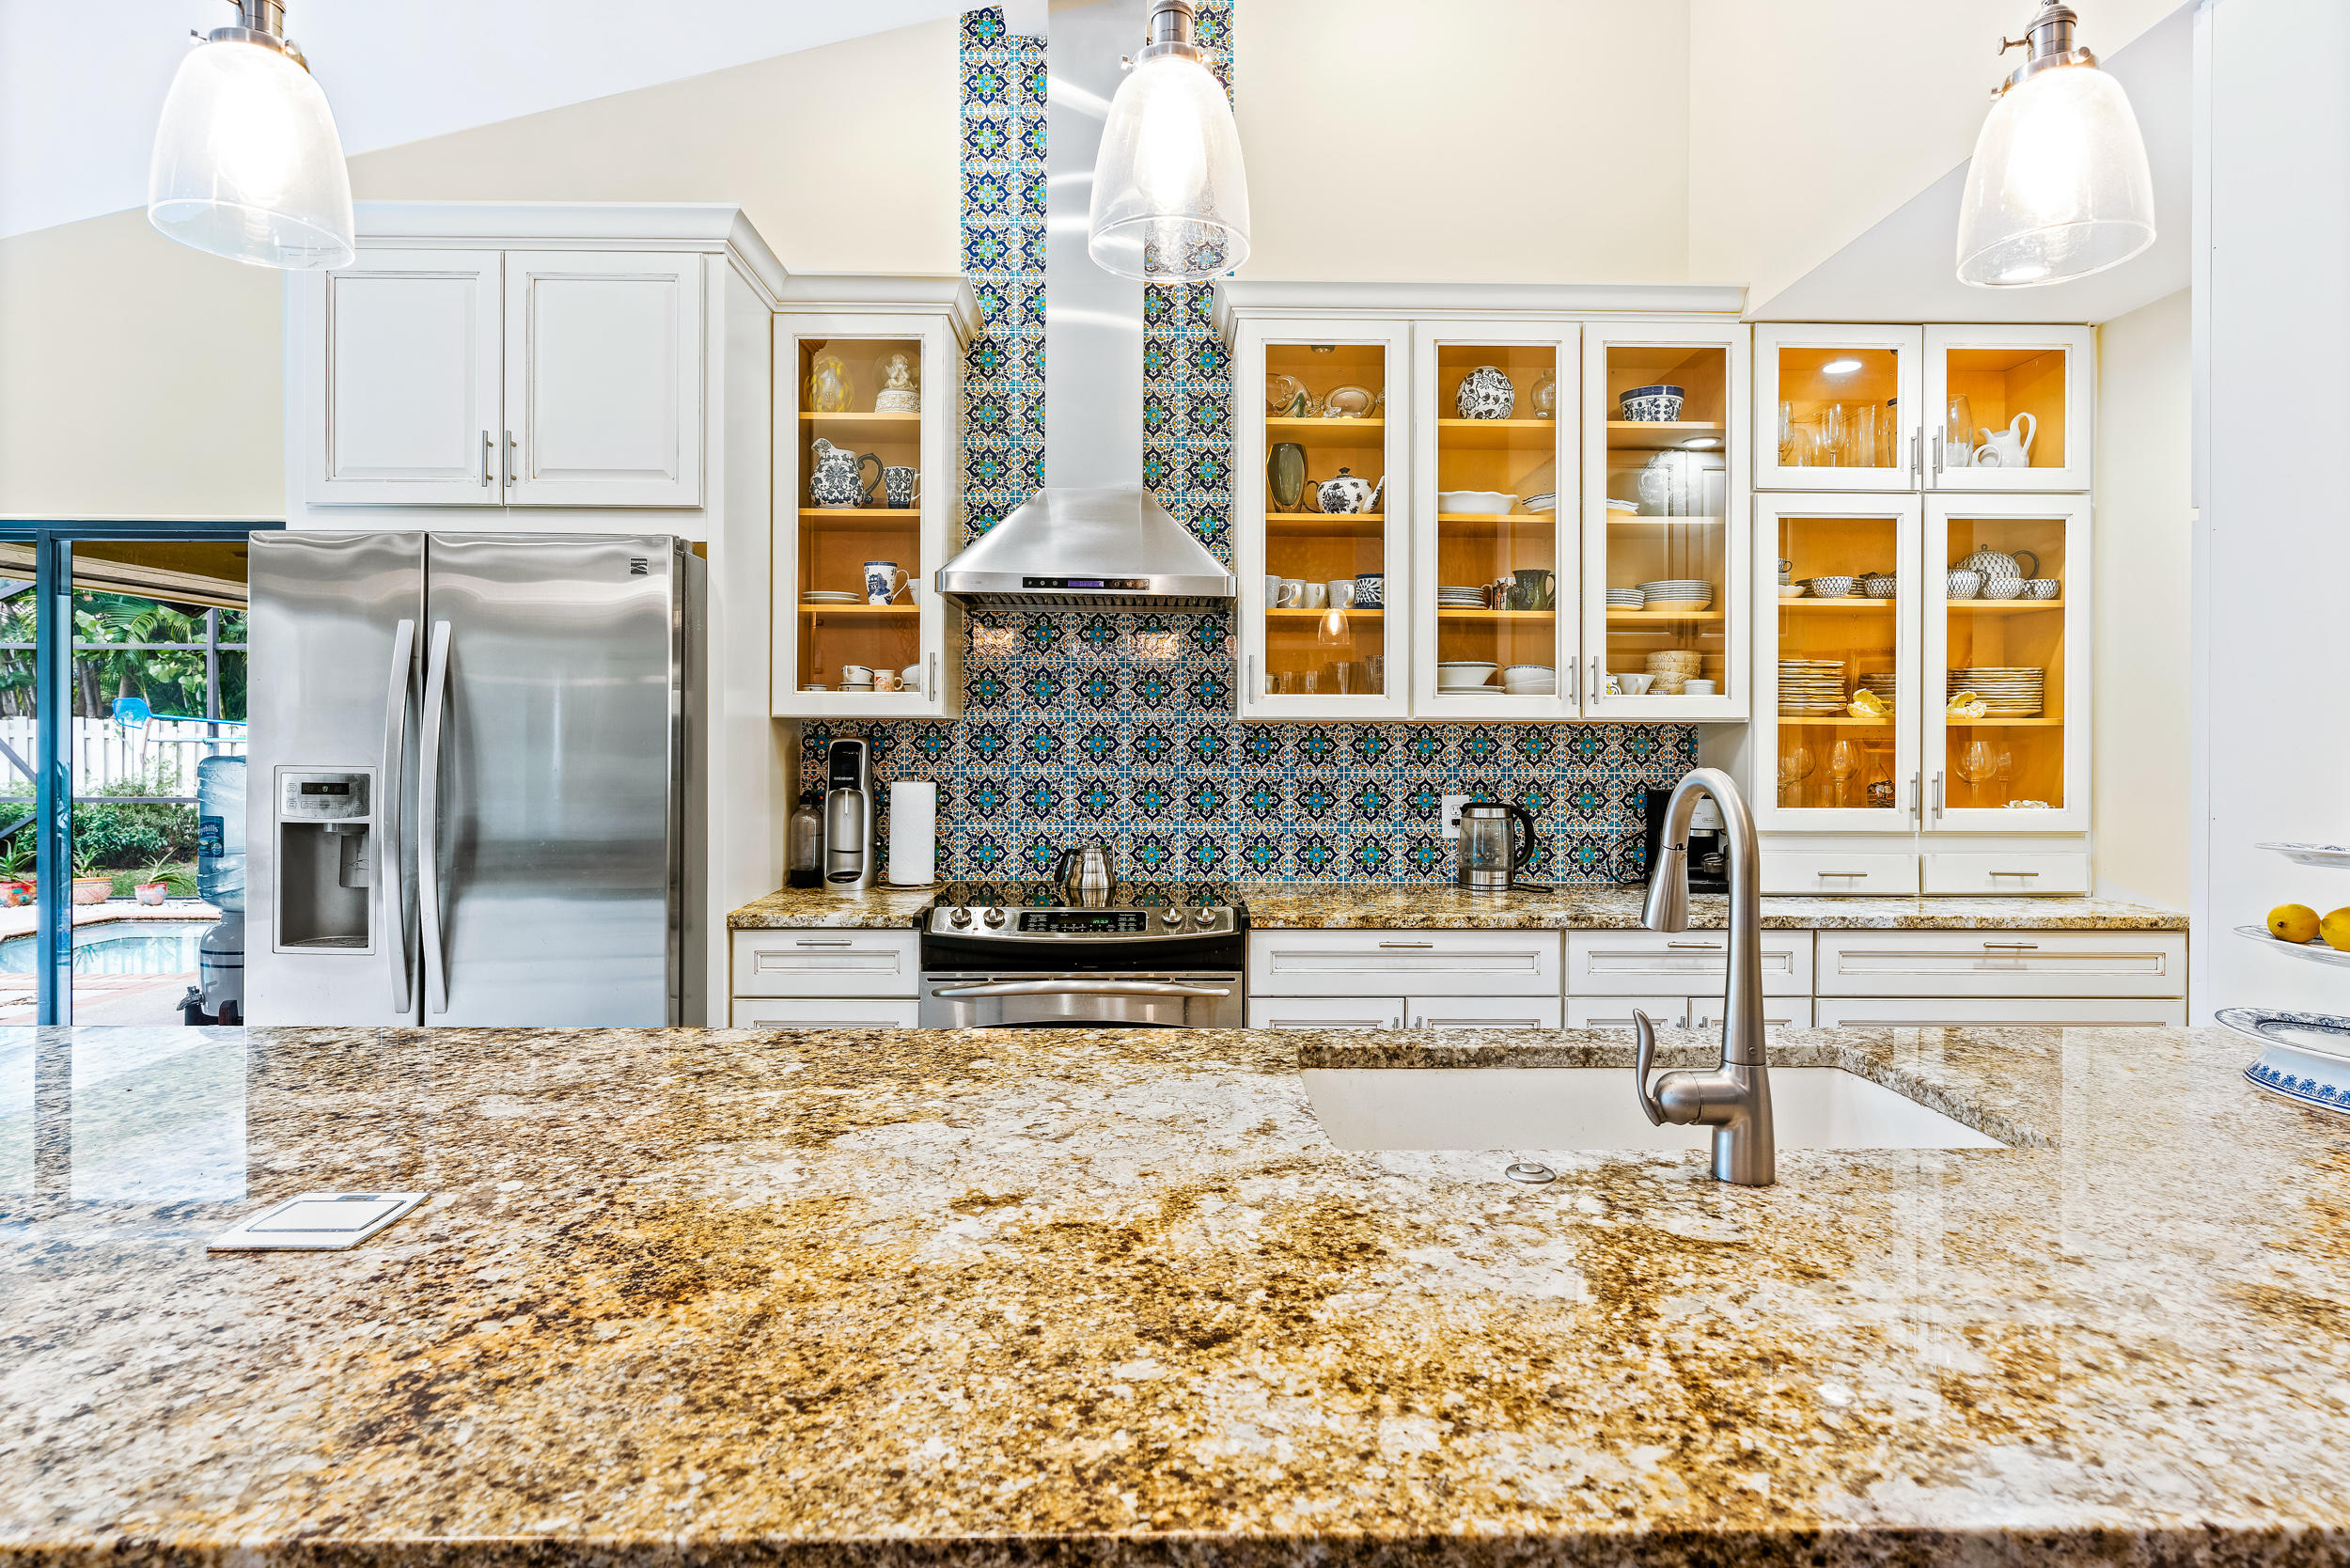 185 Bayberry Place  - Abacoa Homes - photo 14